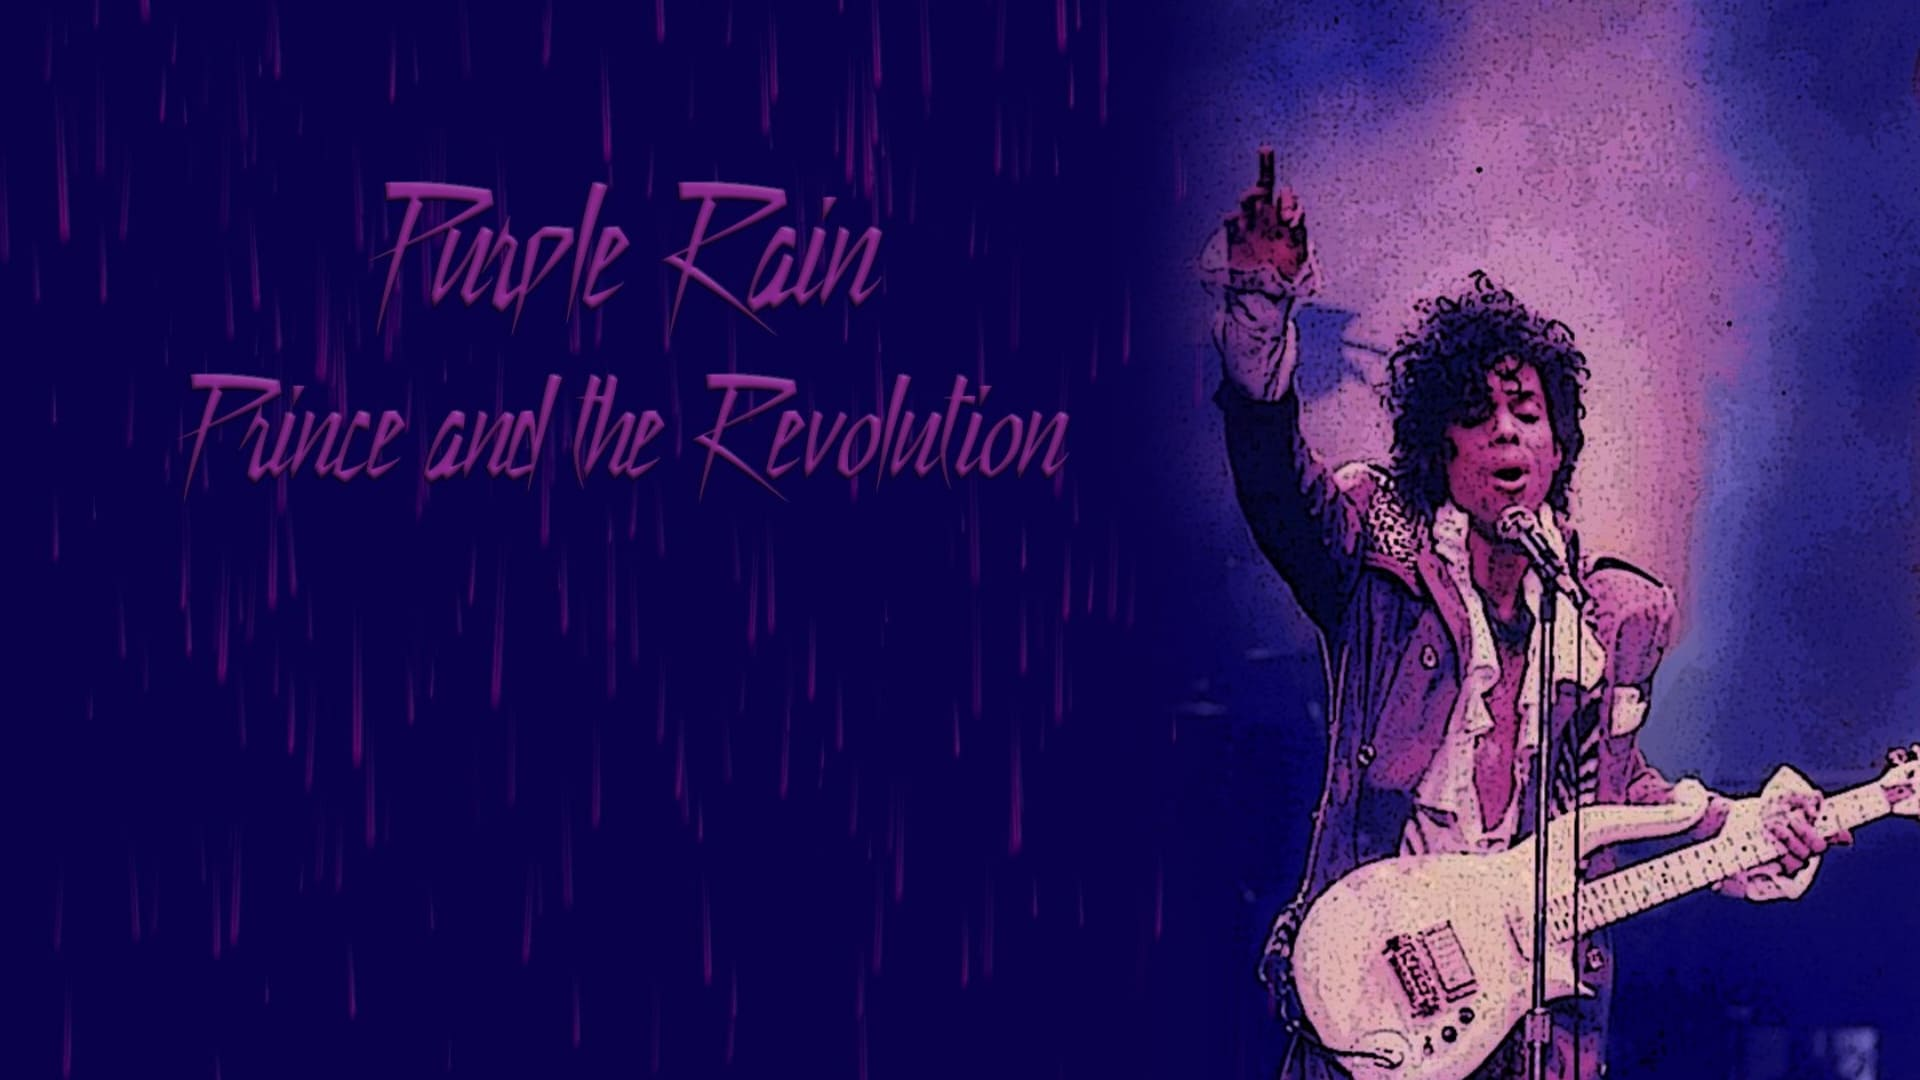 Pics of prince and the revolution